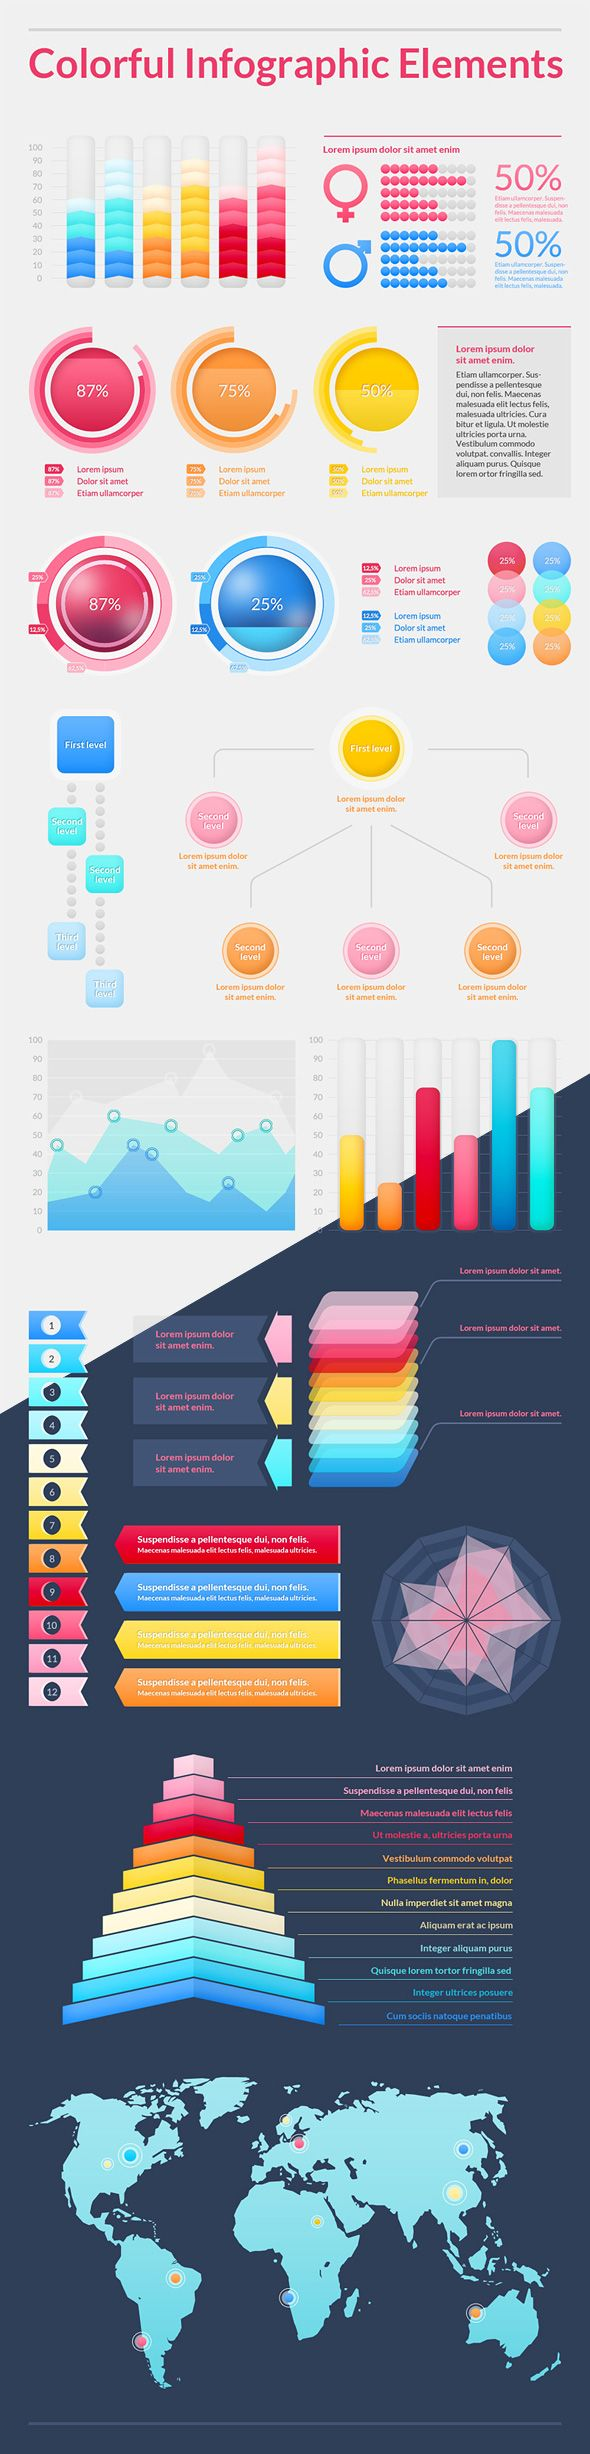 Colourful Infographic Elements